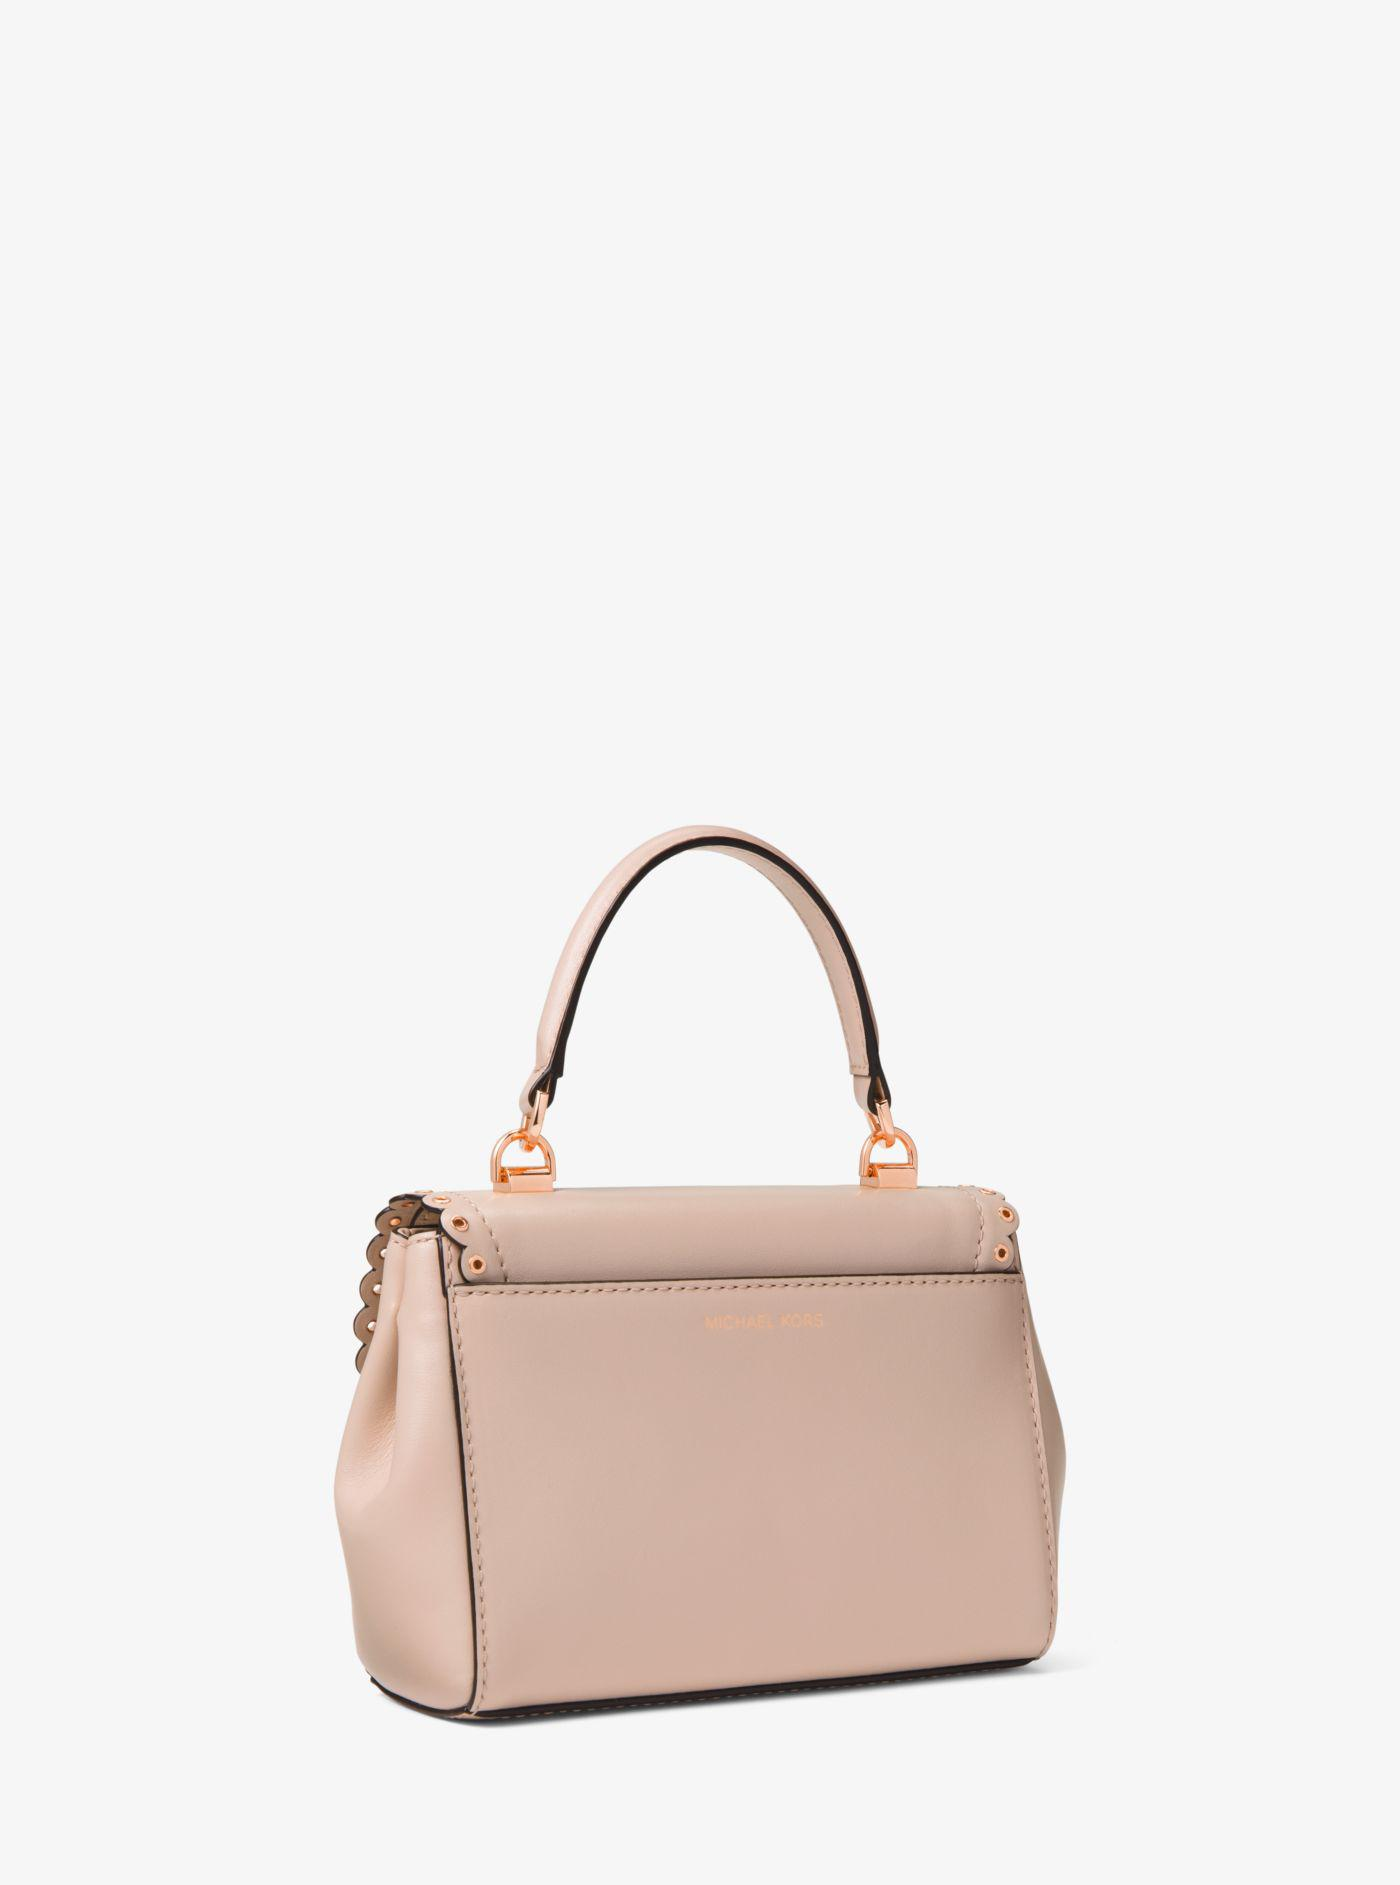 b2bdd35ebac7 Lyst - Michael Kors Ava Extra-small Scalloped Leather Crossbody in Pink